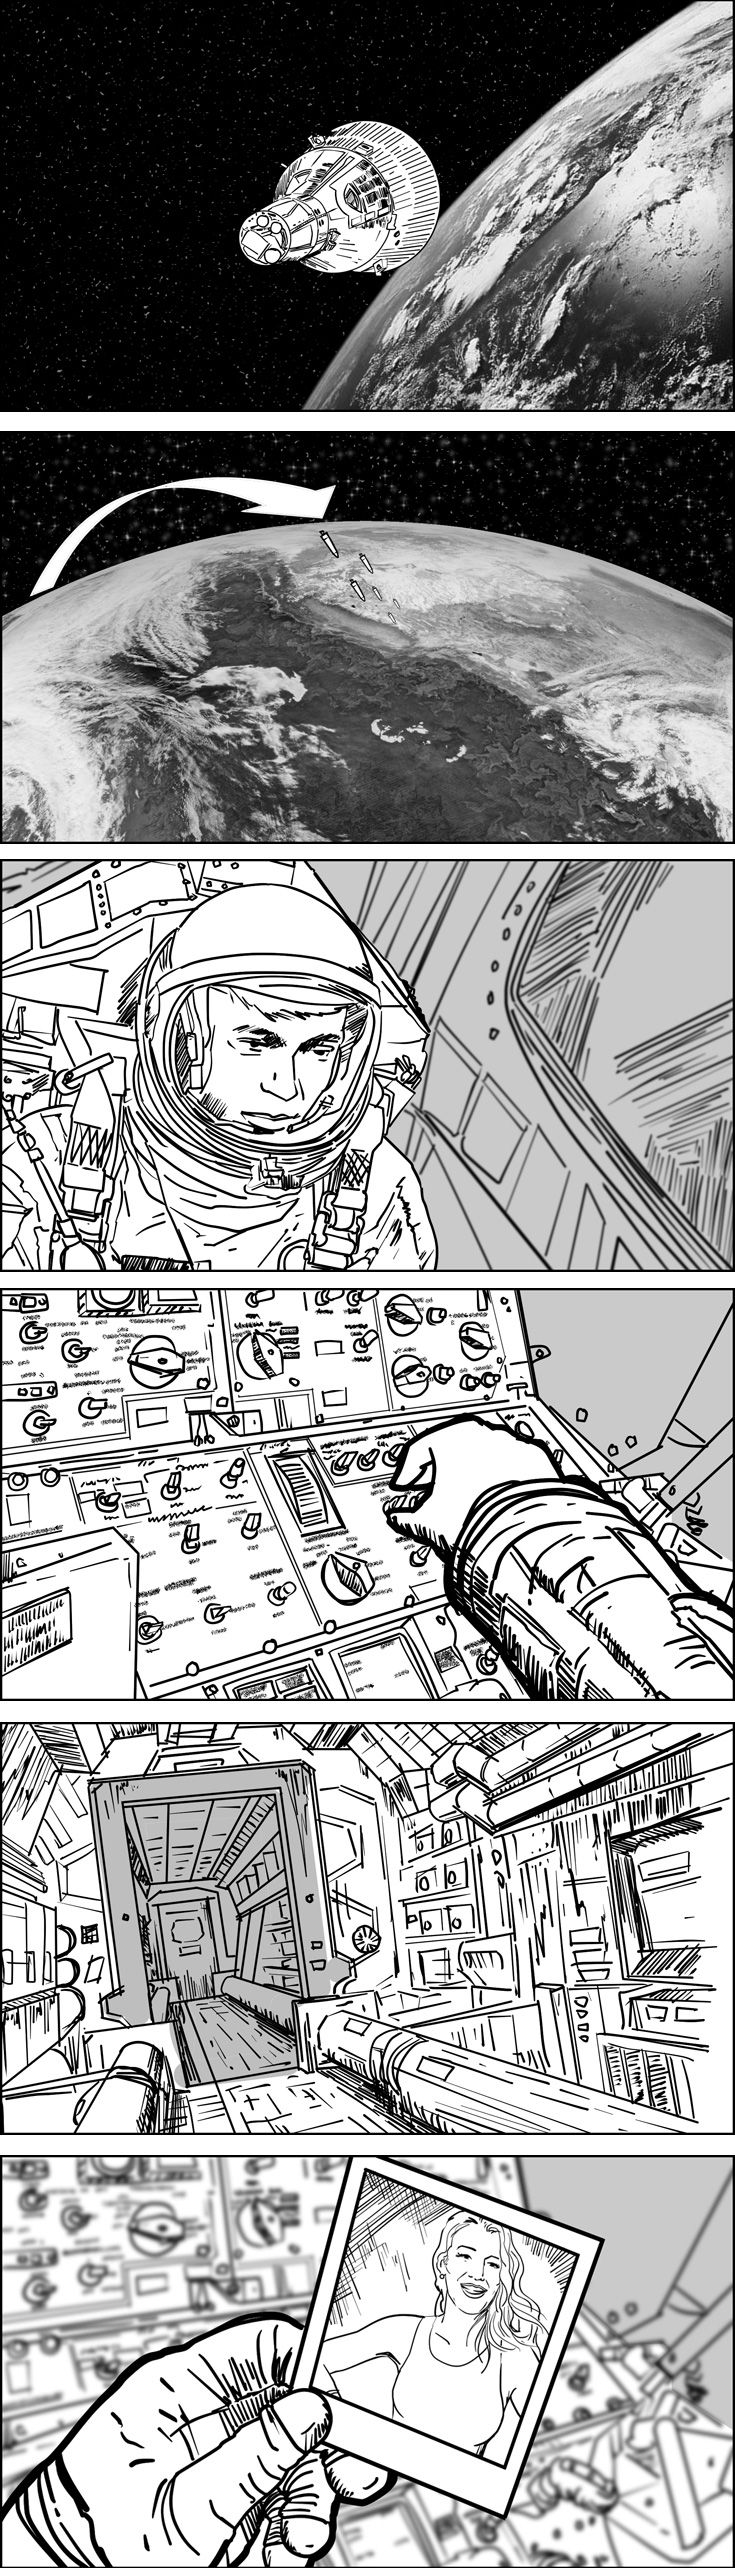 Storyboards for films, commercials and music videos by Cuong Huynh, Storyboard Artist.